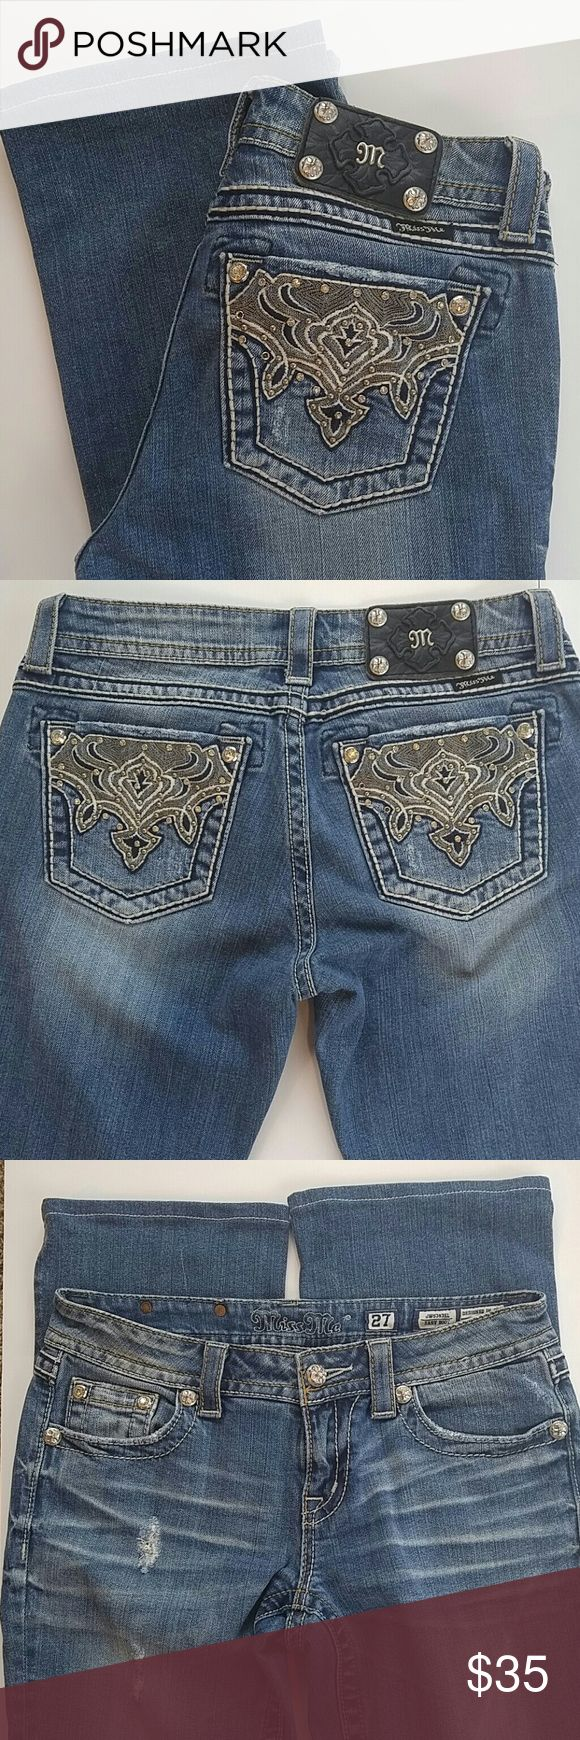 "Miss Me Easy Boot Women's Jeans Size 27.  Waist laying flat is approximately 16"". Hems have been professionally altered to an inseam of 30"".  Distressed areas include hole in left knee - see pics. Miss Me Jeans"